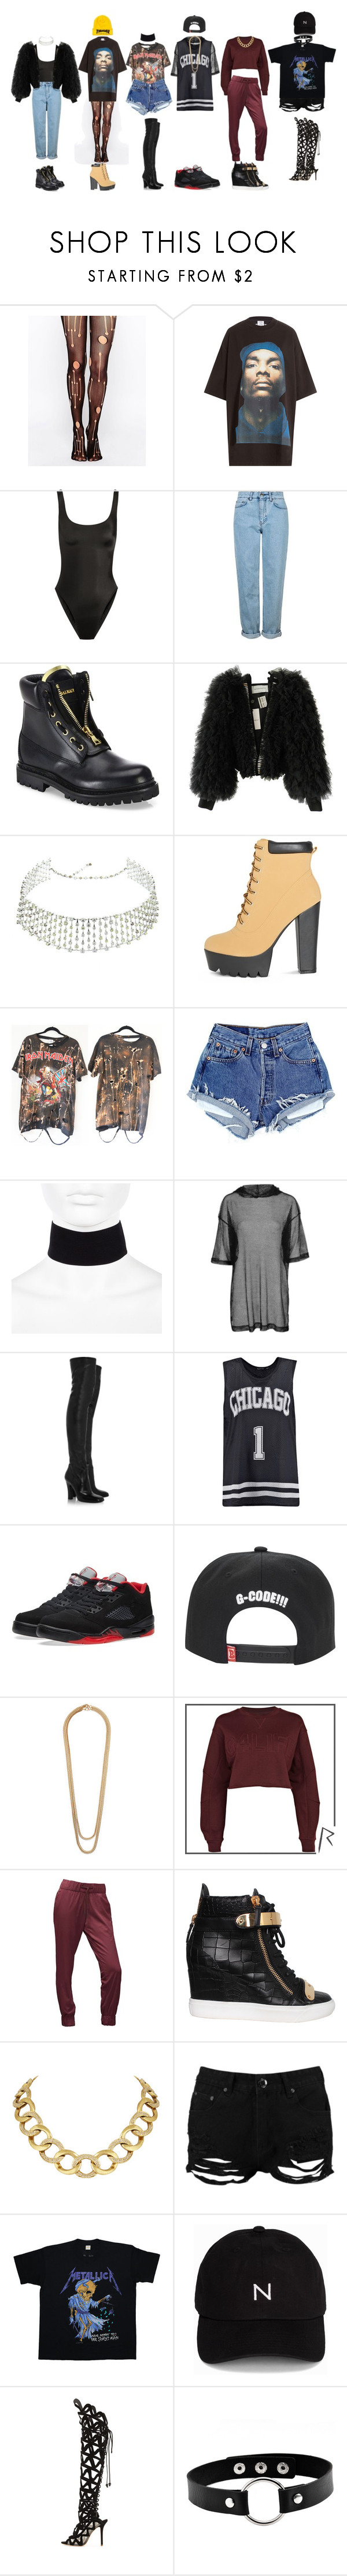 """""""DC- '휘파람'(WHISTLE)"""" by yonce4park ❤ liked on Polyvore featuring Leg Avenue, Vetements, Norma Kamali, Topshop, Balmain, Viktor & Rolf, H.Stern, River Island, Yves Saint Laurent and Boohoo"""